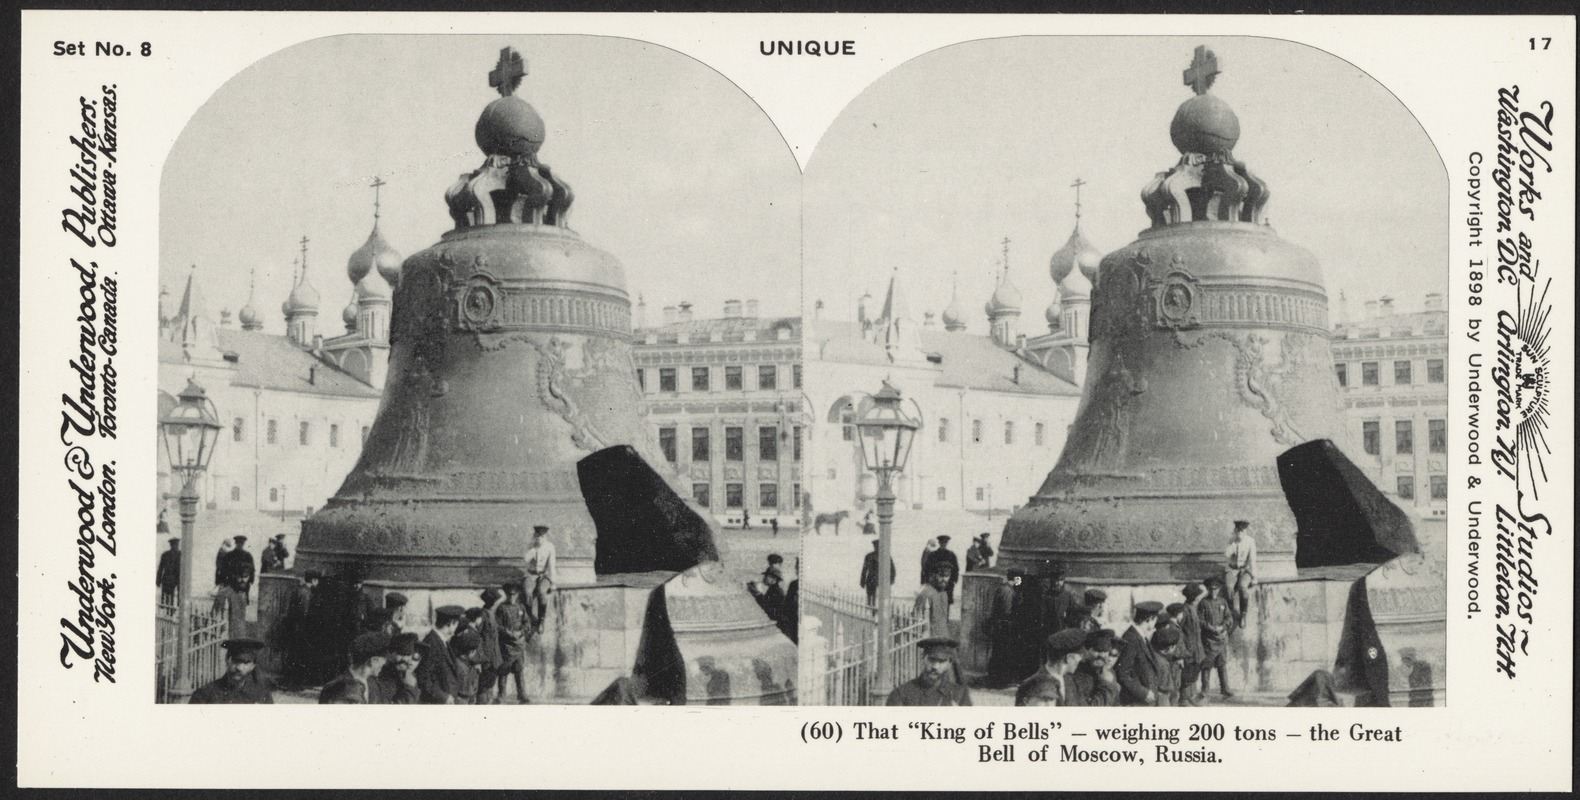 """That """"King of Bells"""" -weighing 200 tons - the Great Bell of Moscow, Russia"""